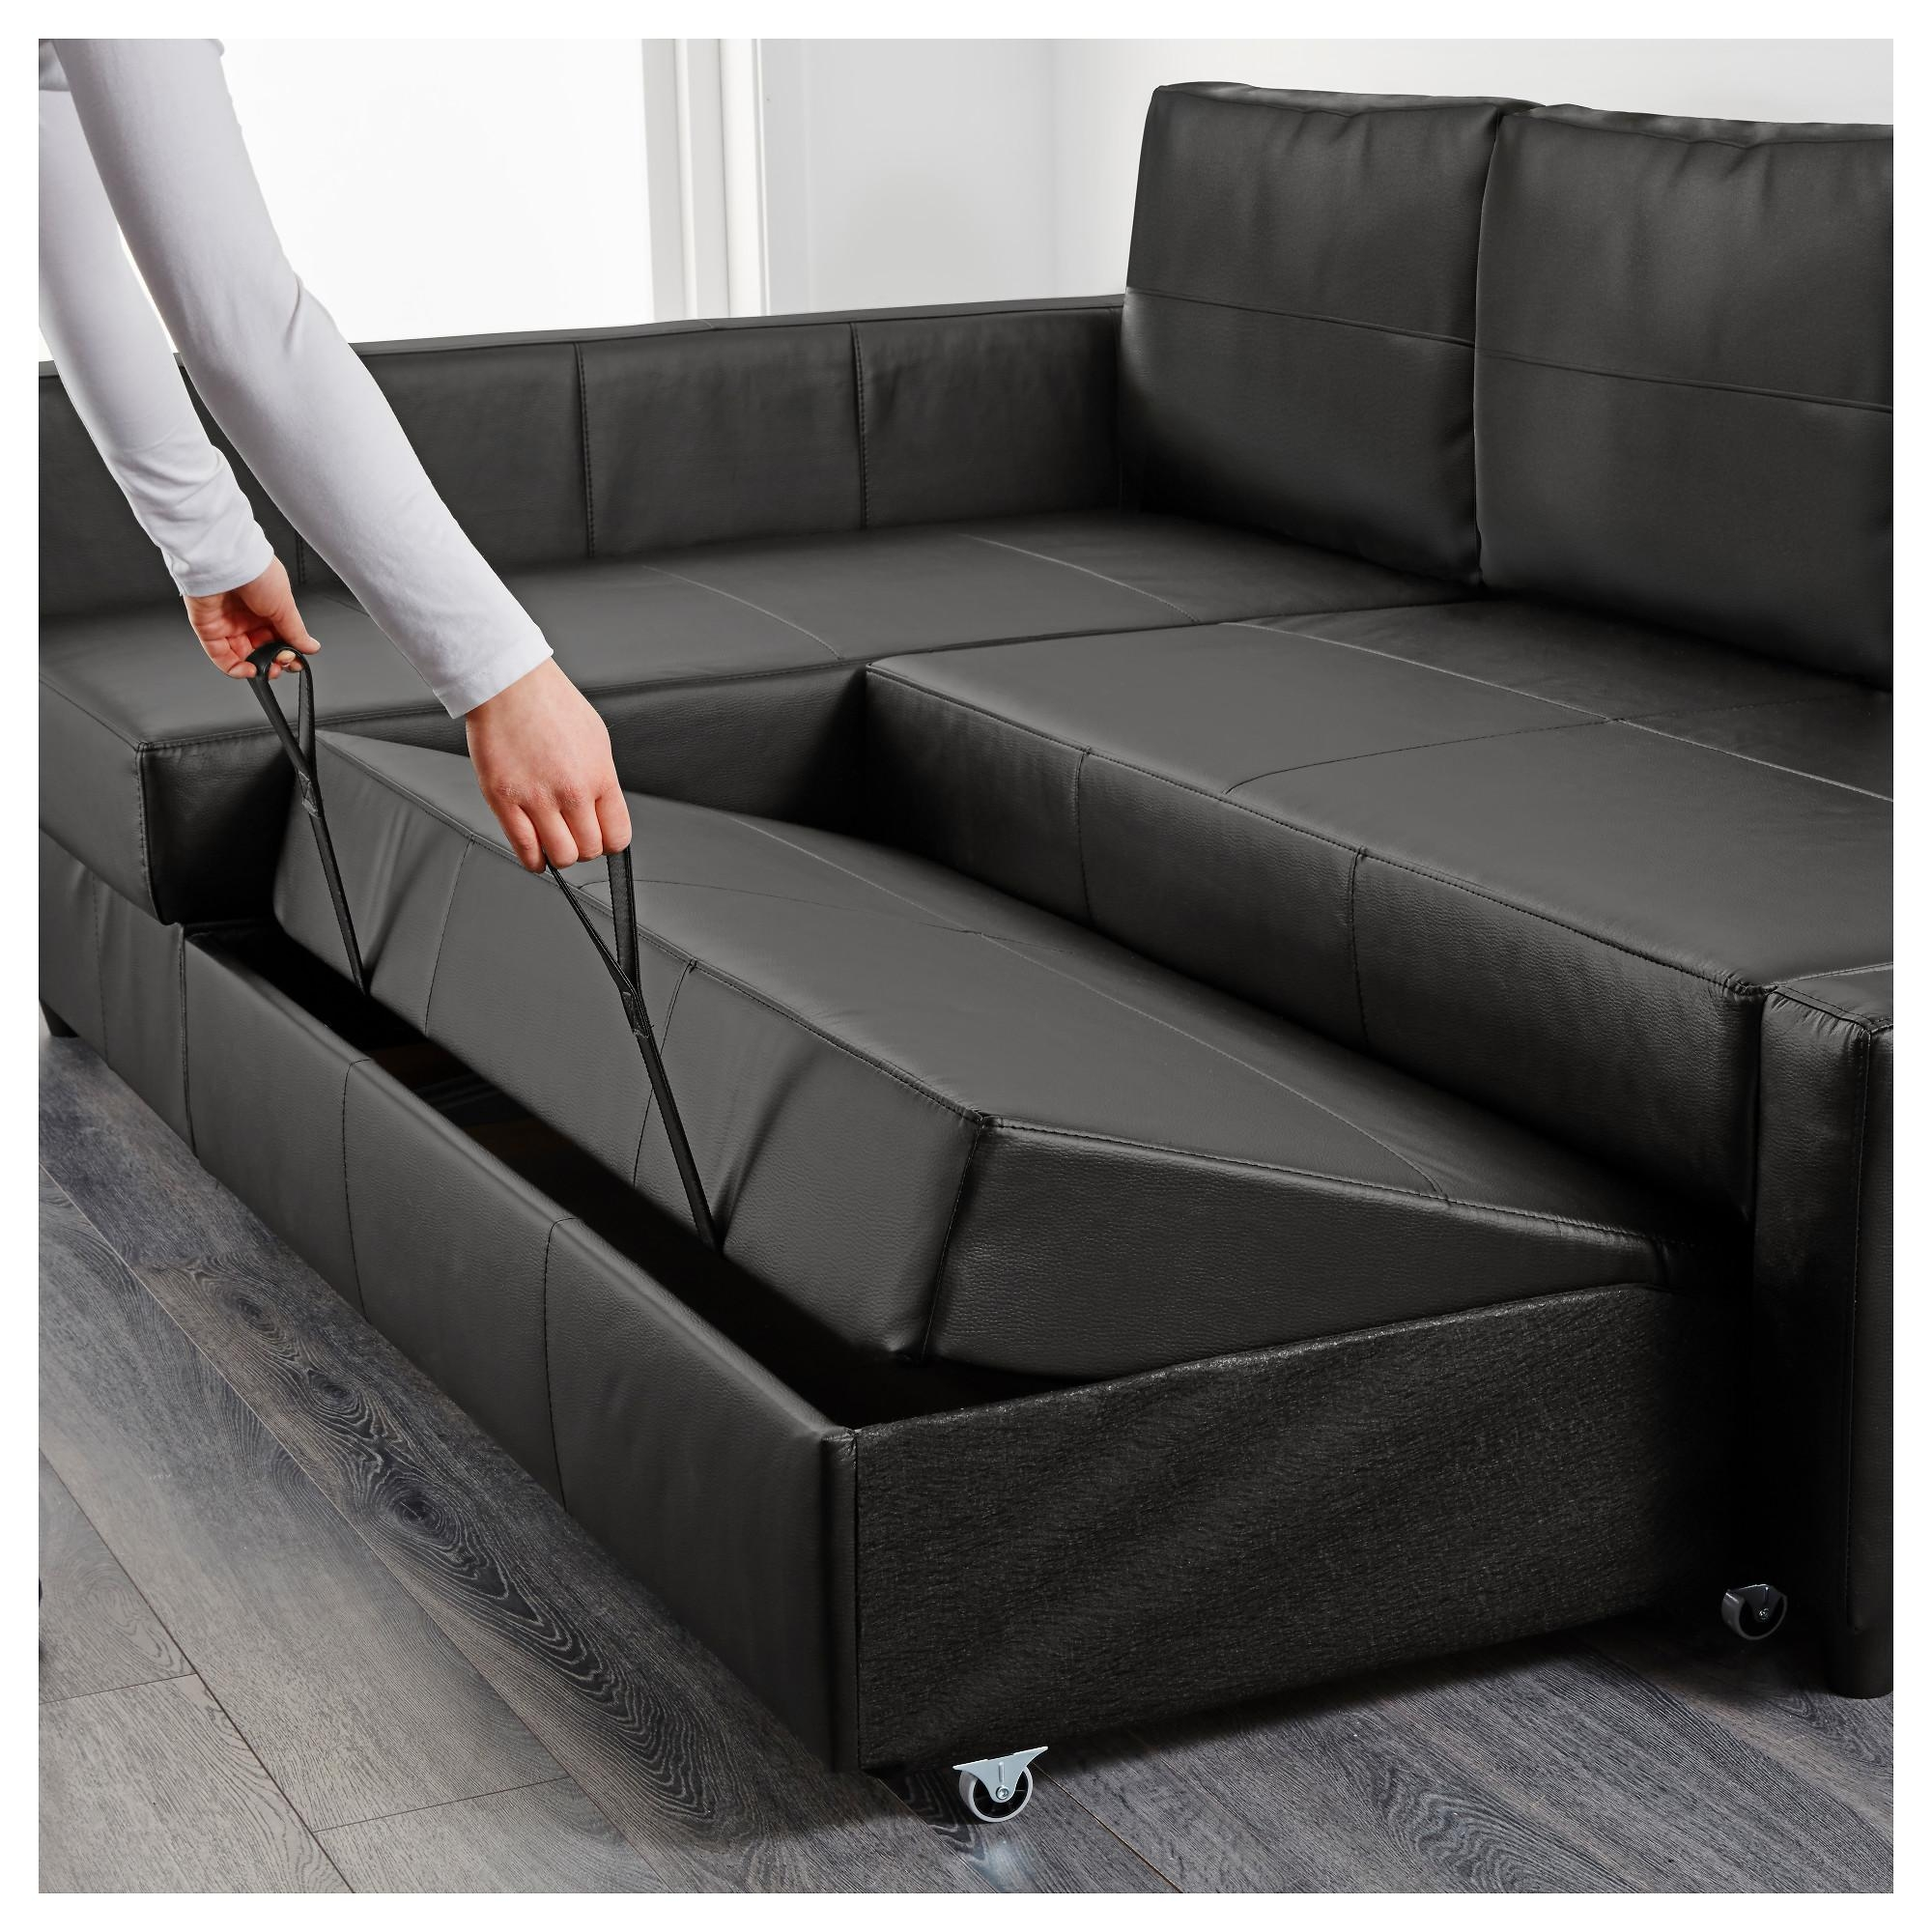 Friheten Sleeper Sectional,3 Seat W/storage – Skiftebo Dark Gray Intended For Leather Storage Sofas (View 2 of 21)